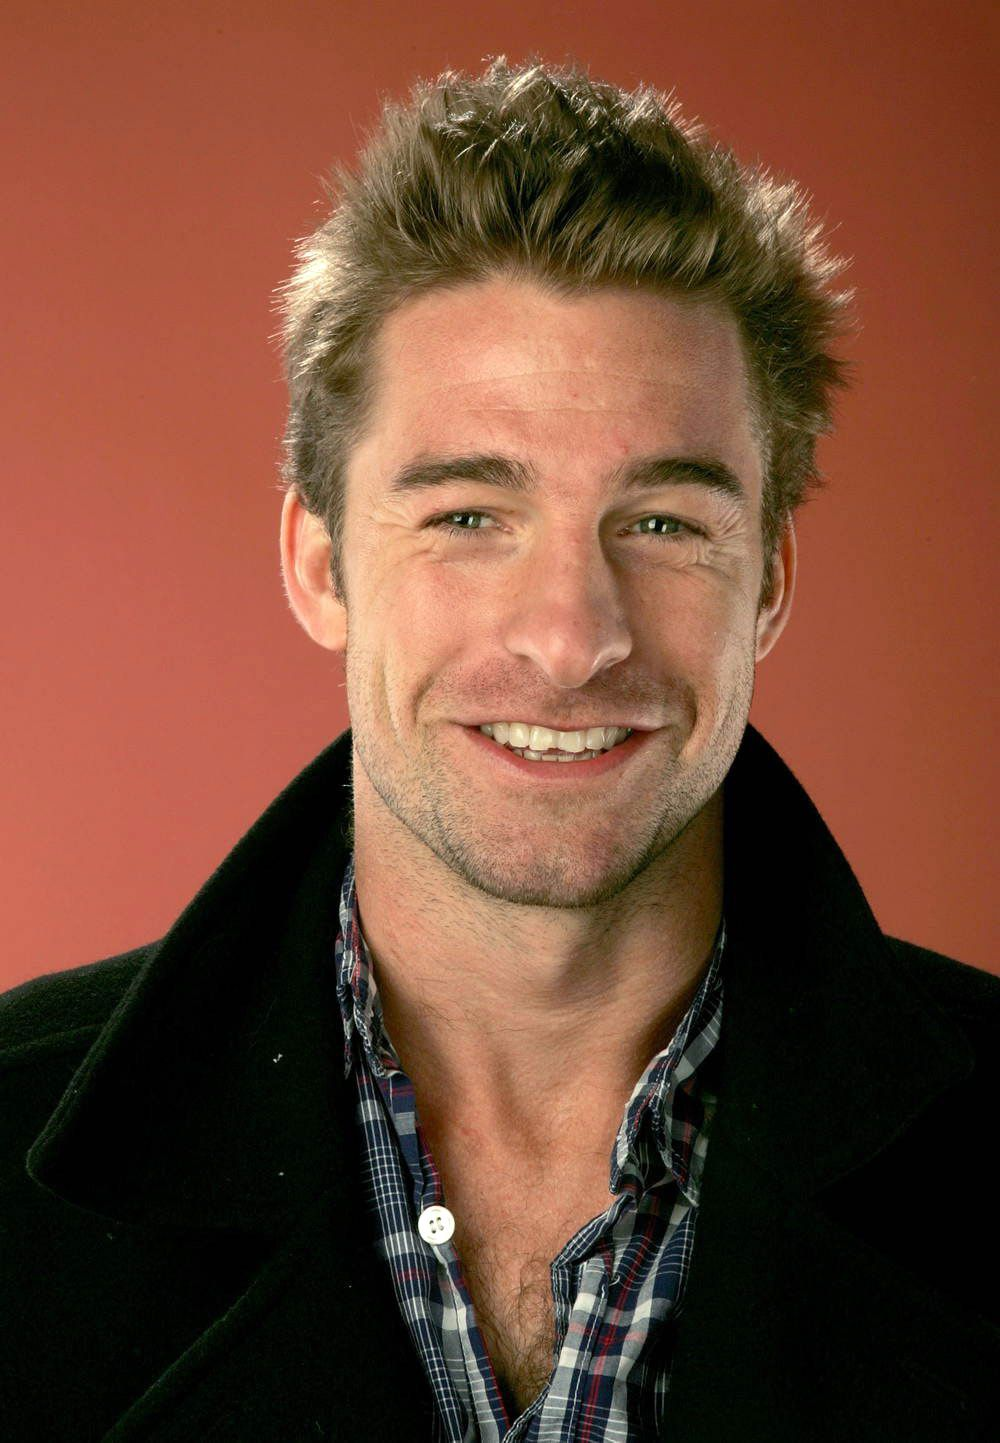 Sunny mabrey quotes quotations and aphorisms from openquotes quotes - Scott Speedman Google Search